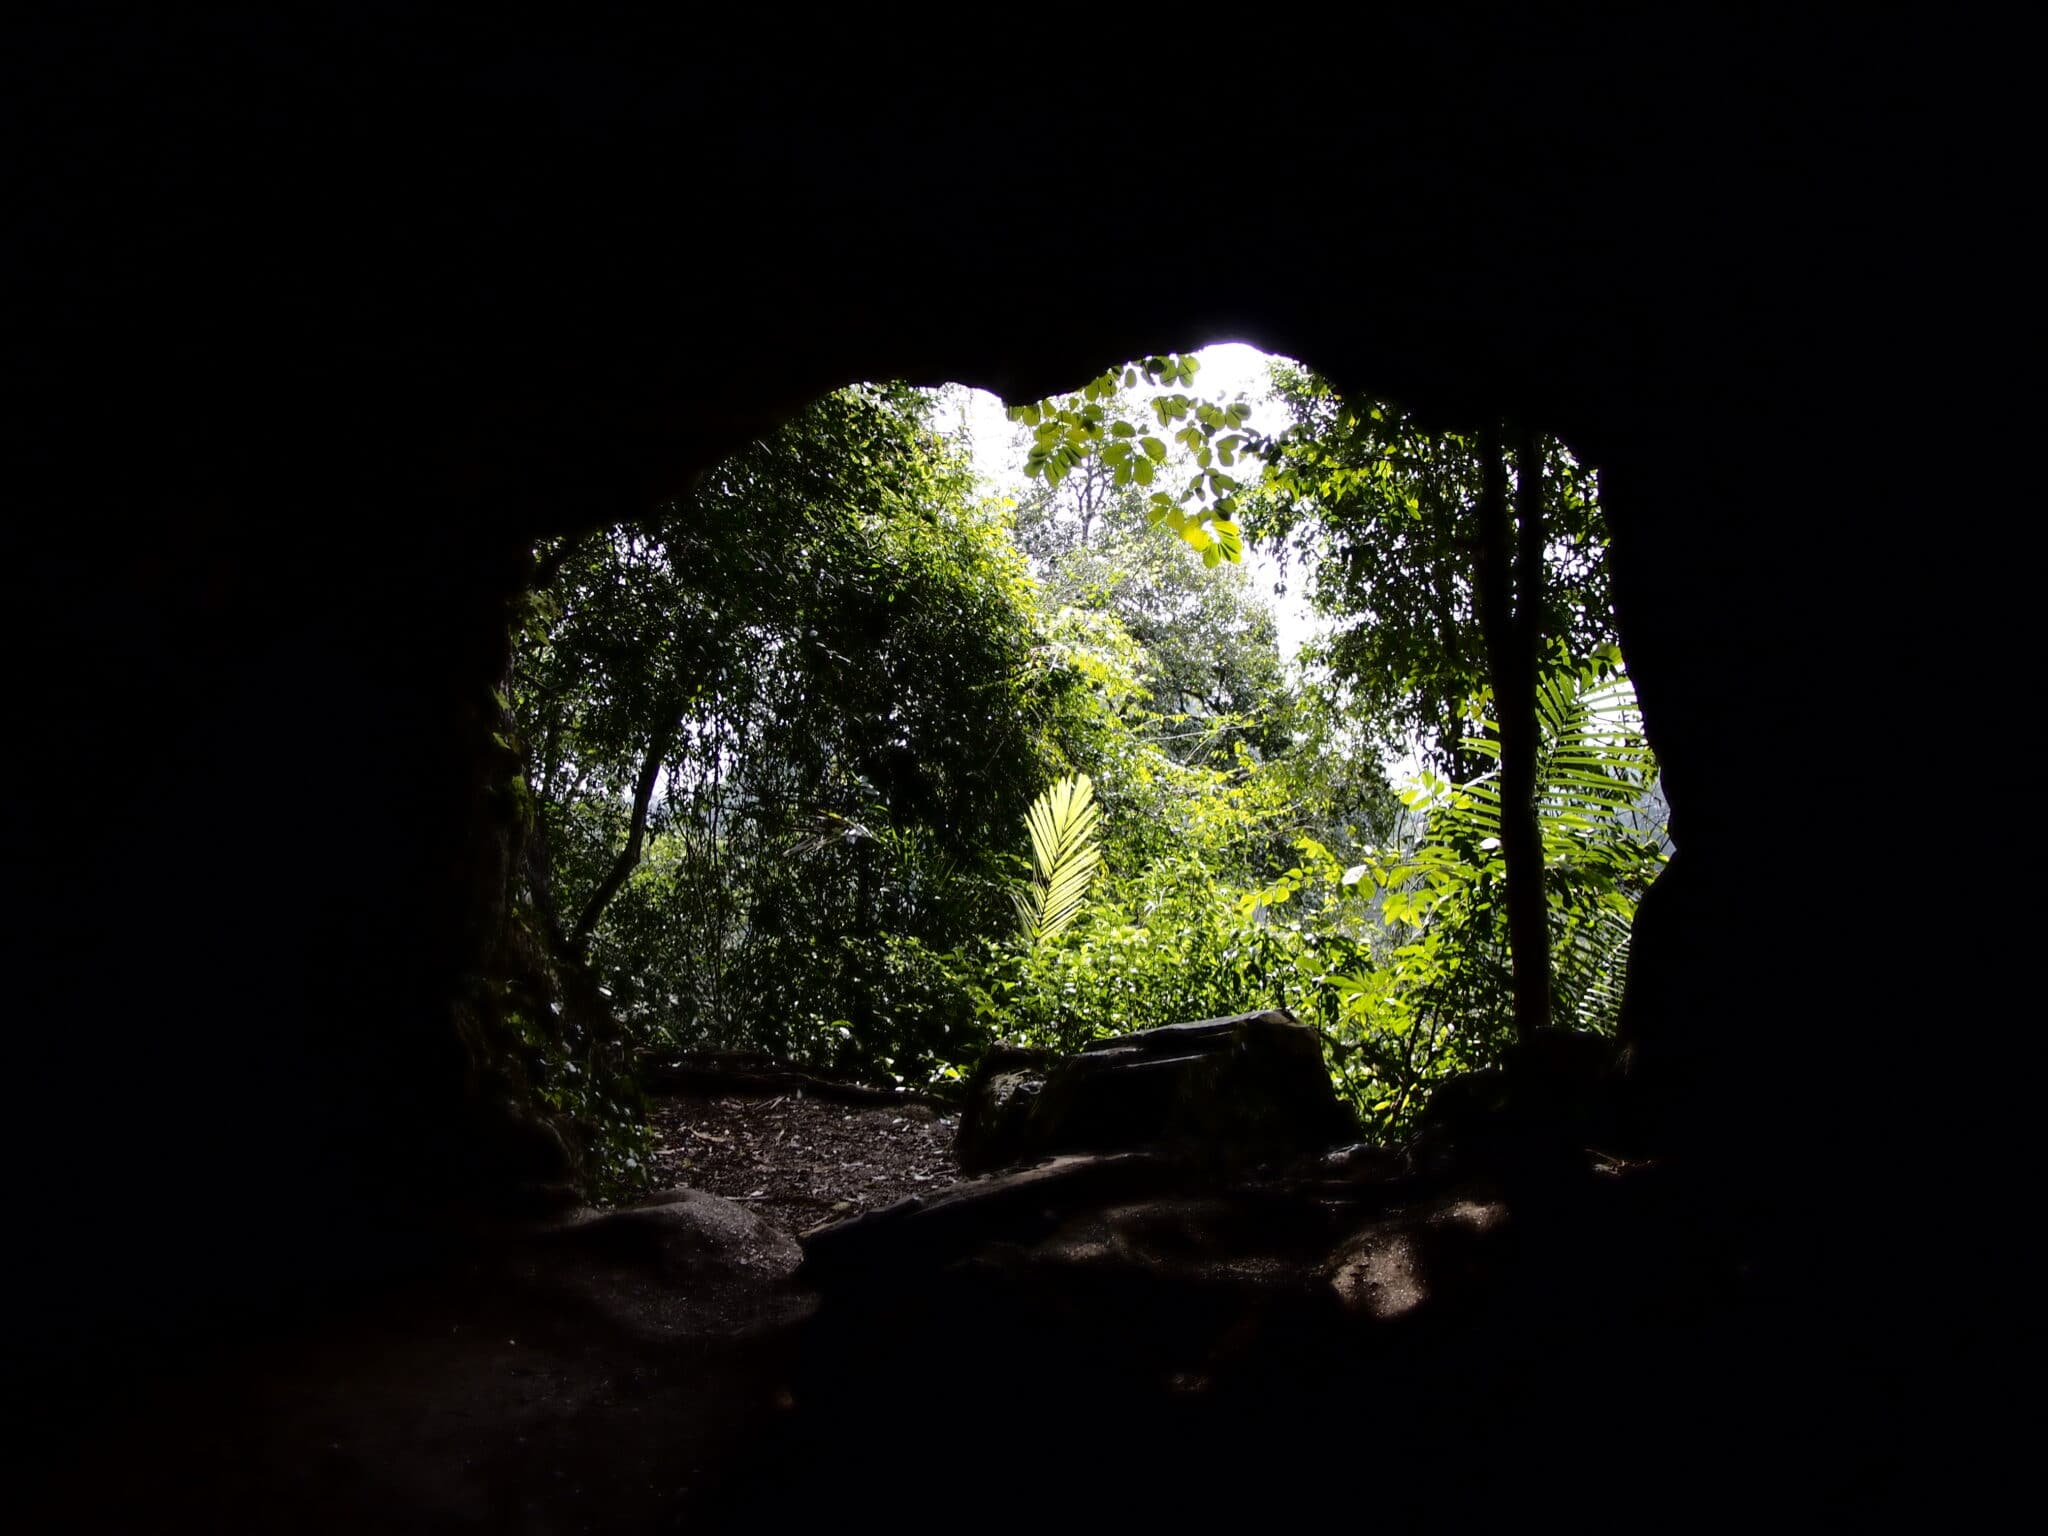 Cave Entrance in Cuc Phuong National Park Vietnam